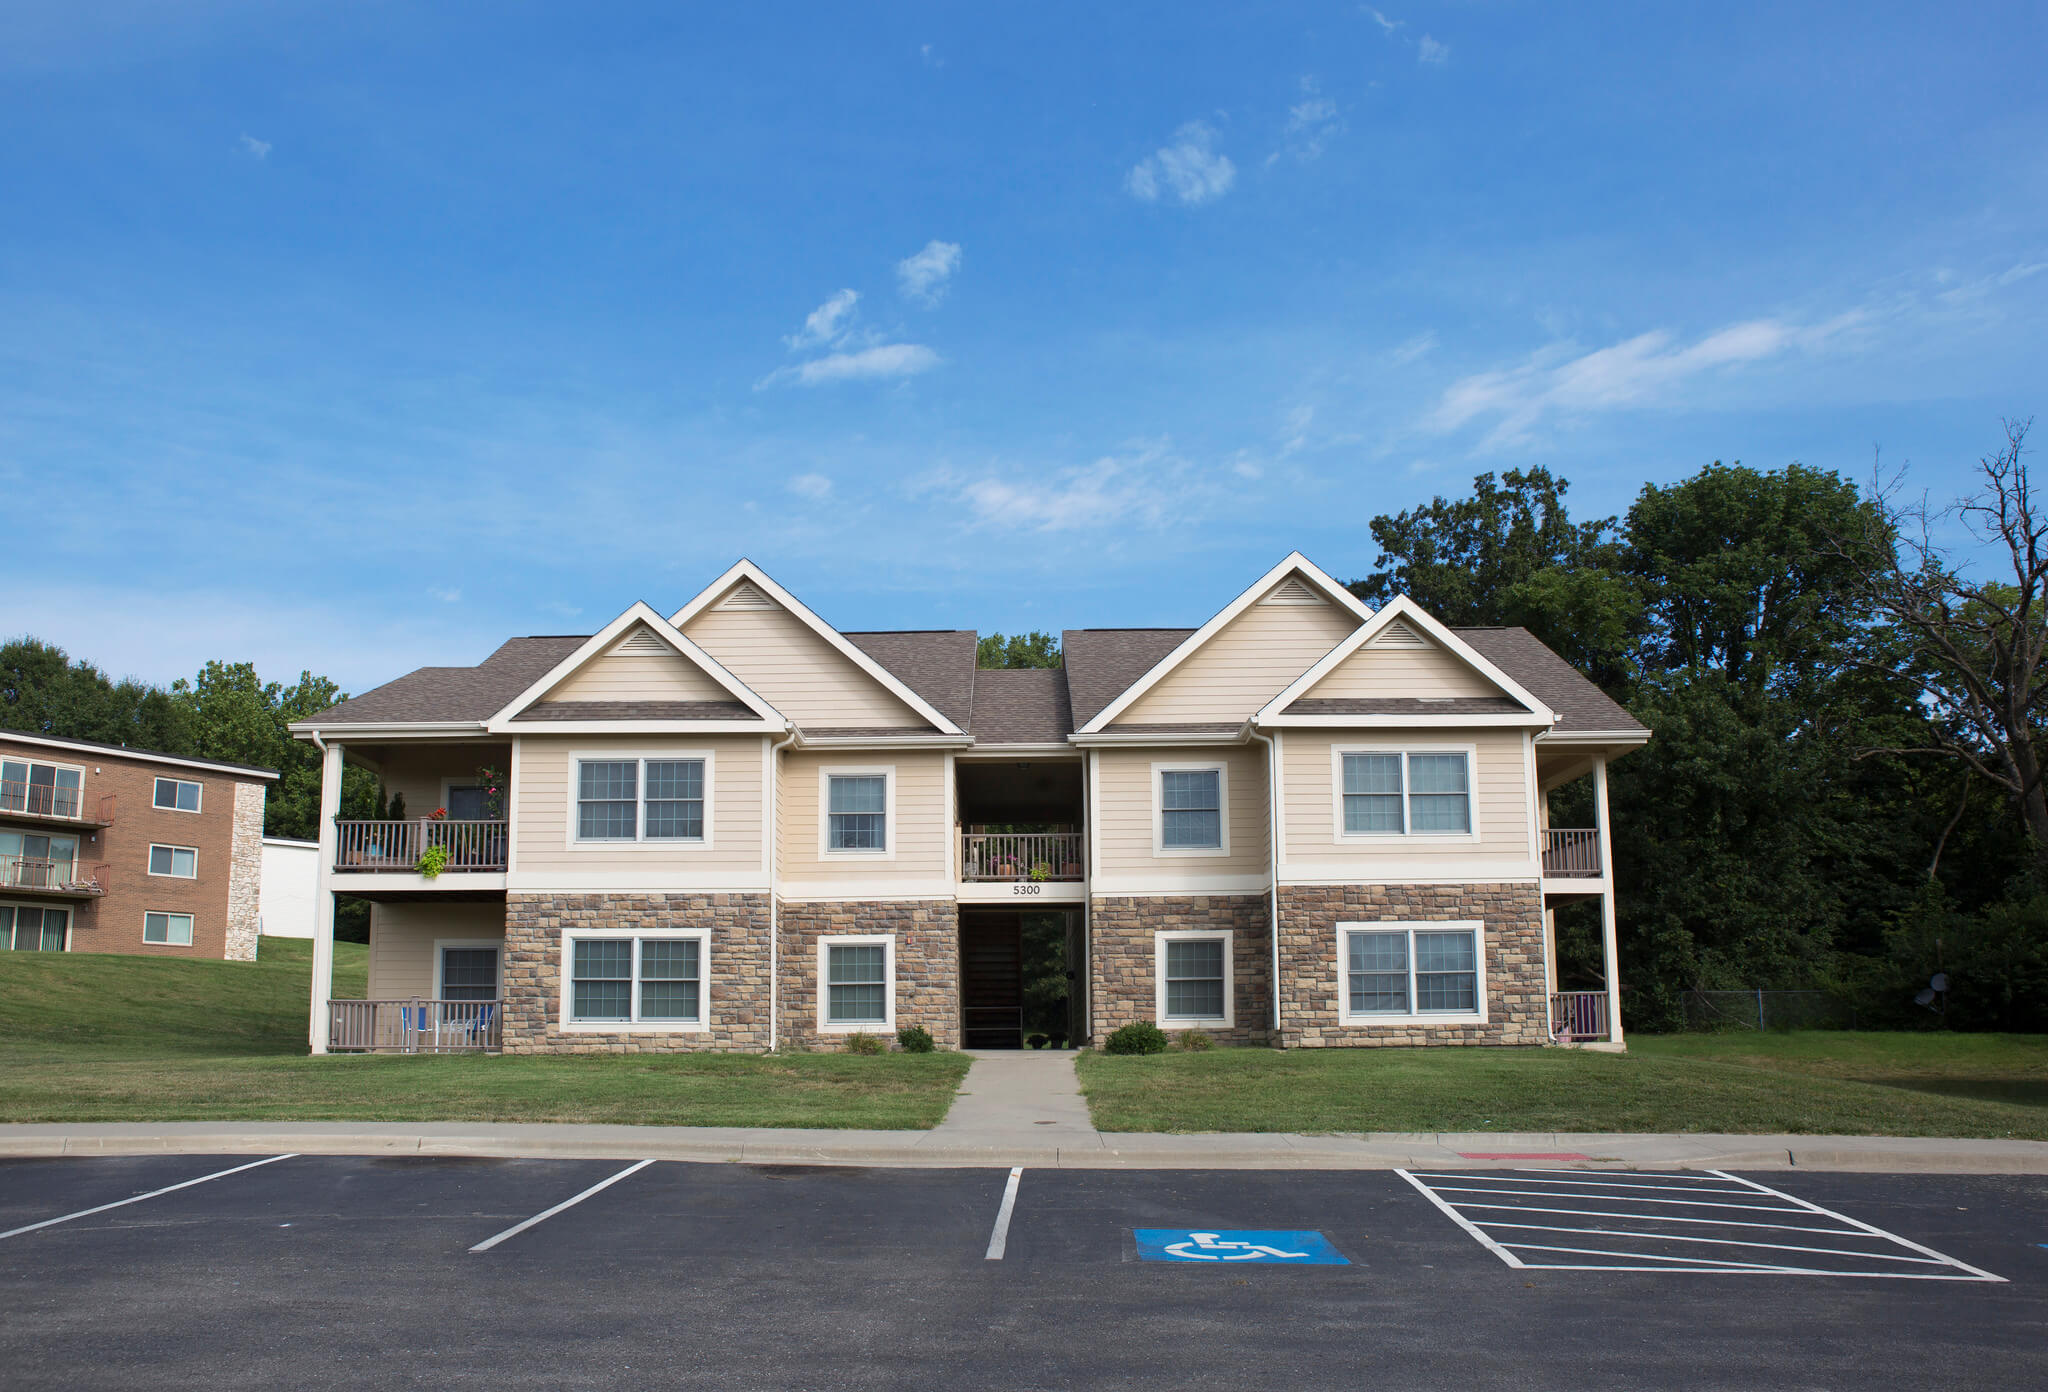 Campus Housing - Midwestern Baptist Theological Seminary